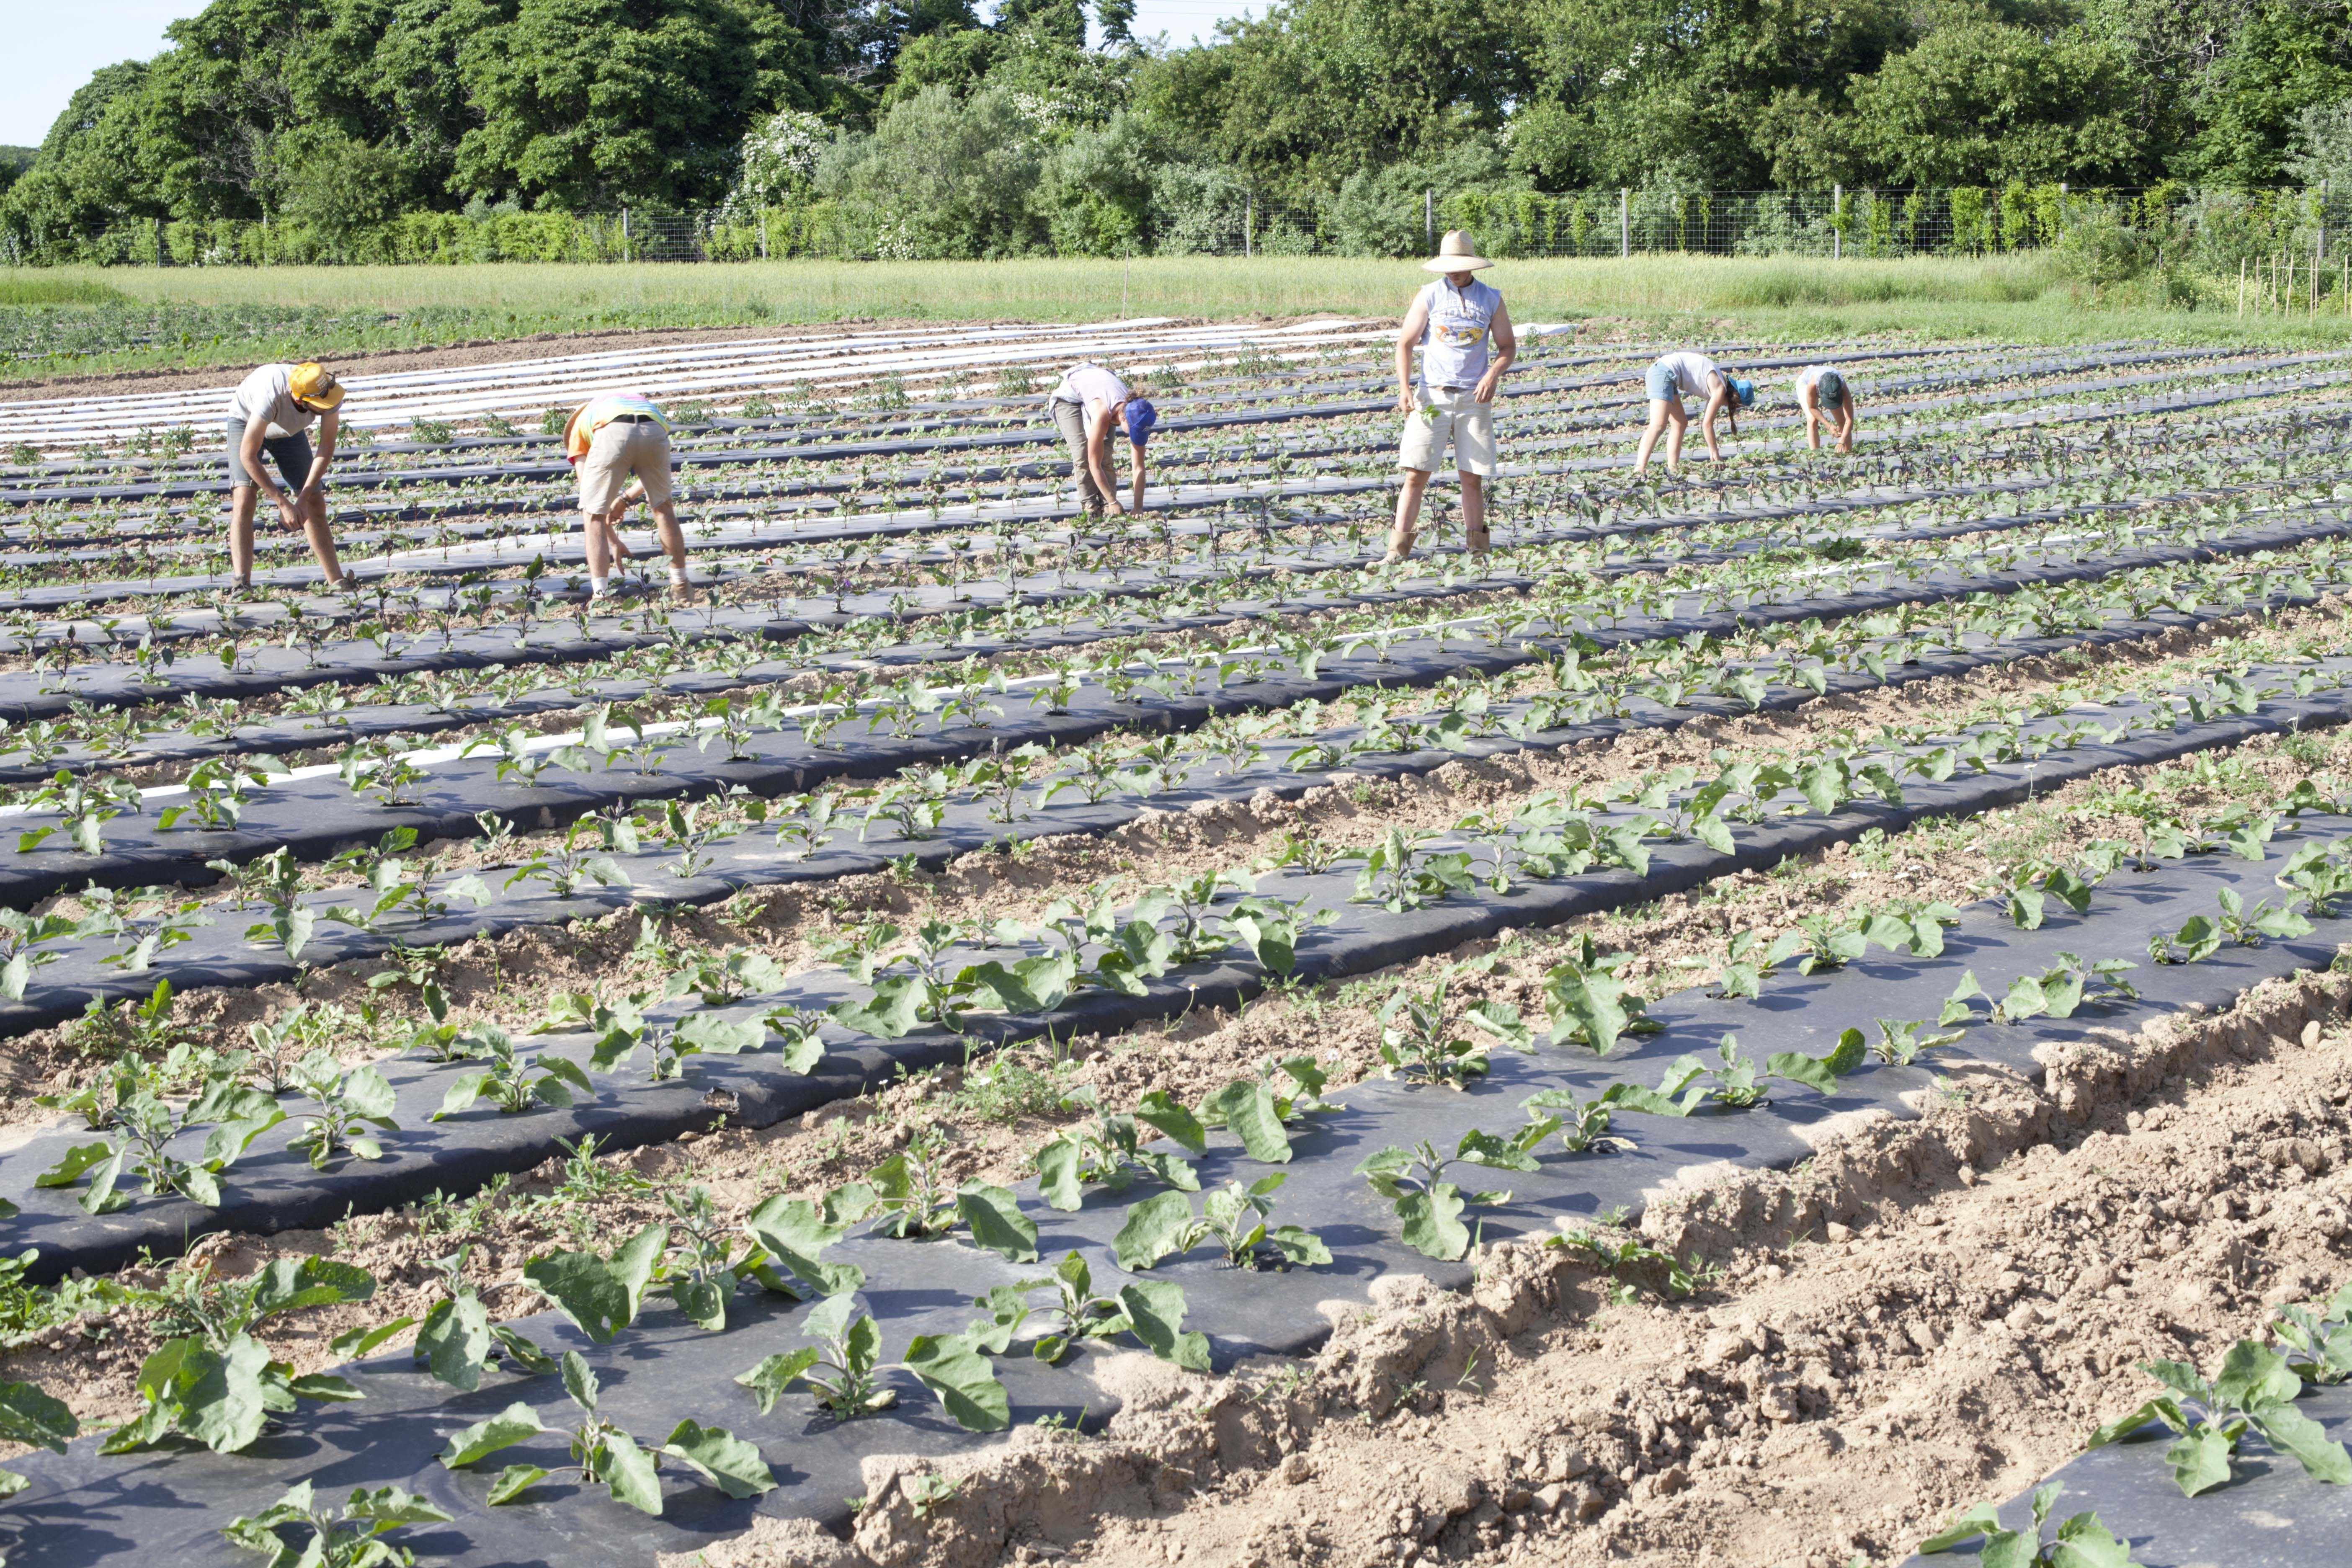 people planting new crops at Amber Waves Farm